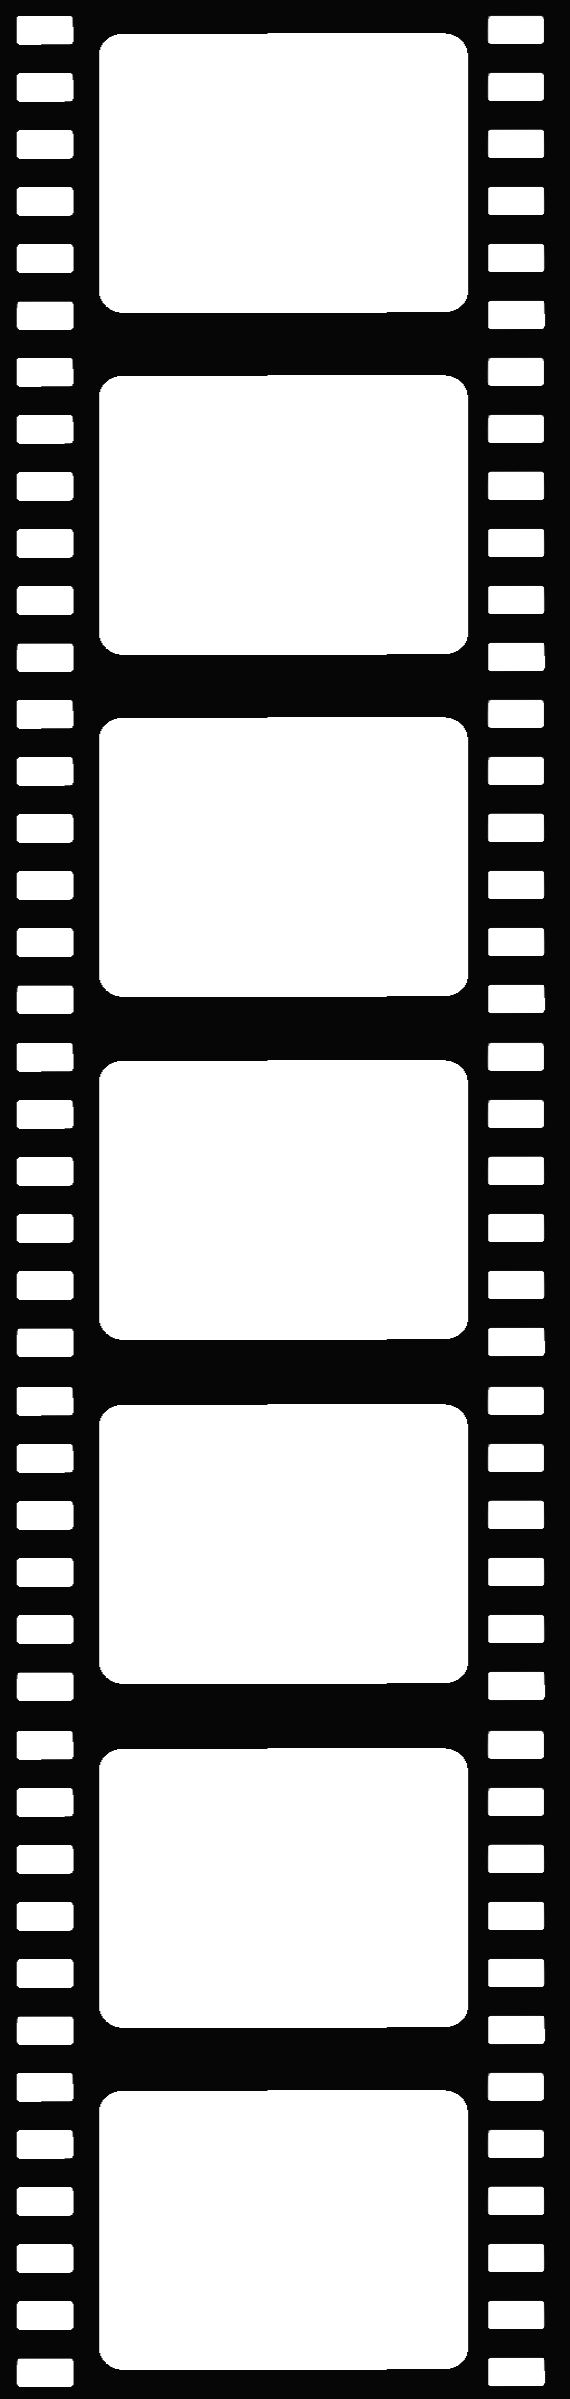 Film frame png. Picture april onthemarch co